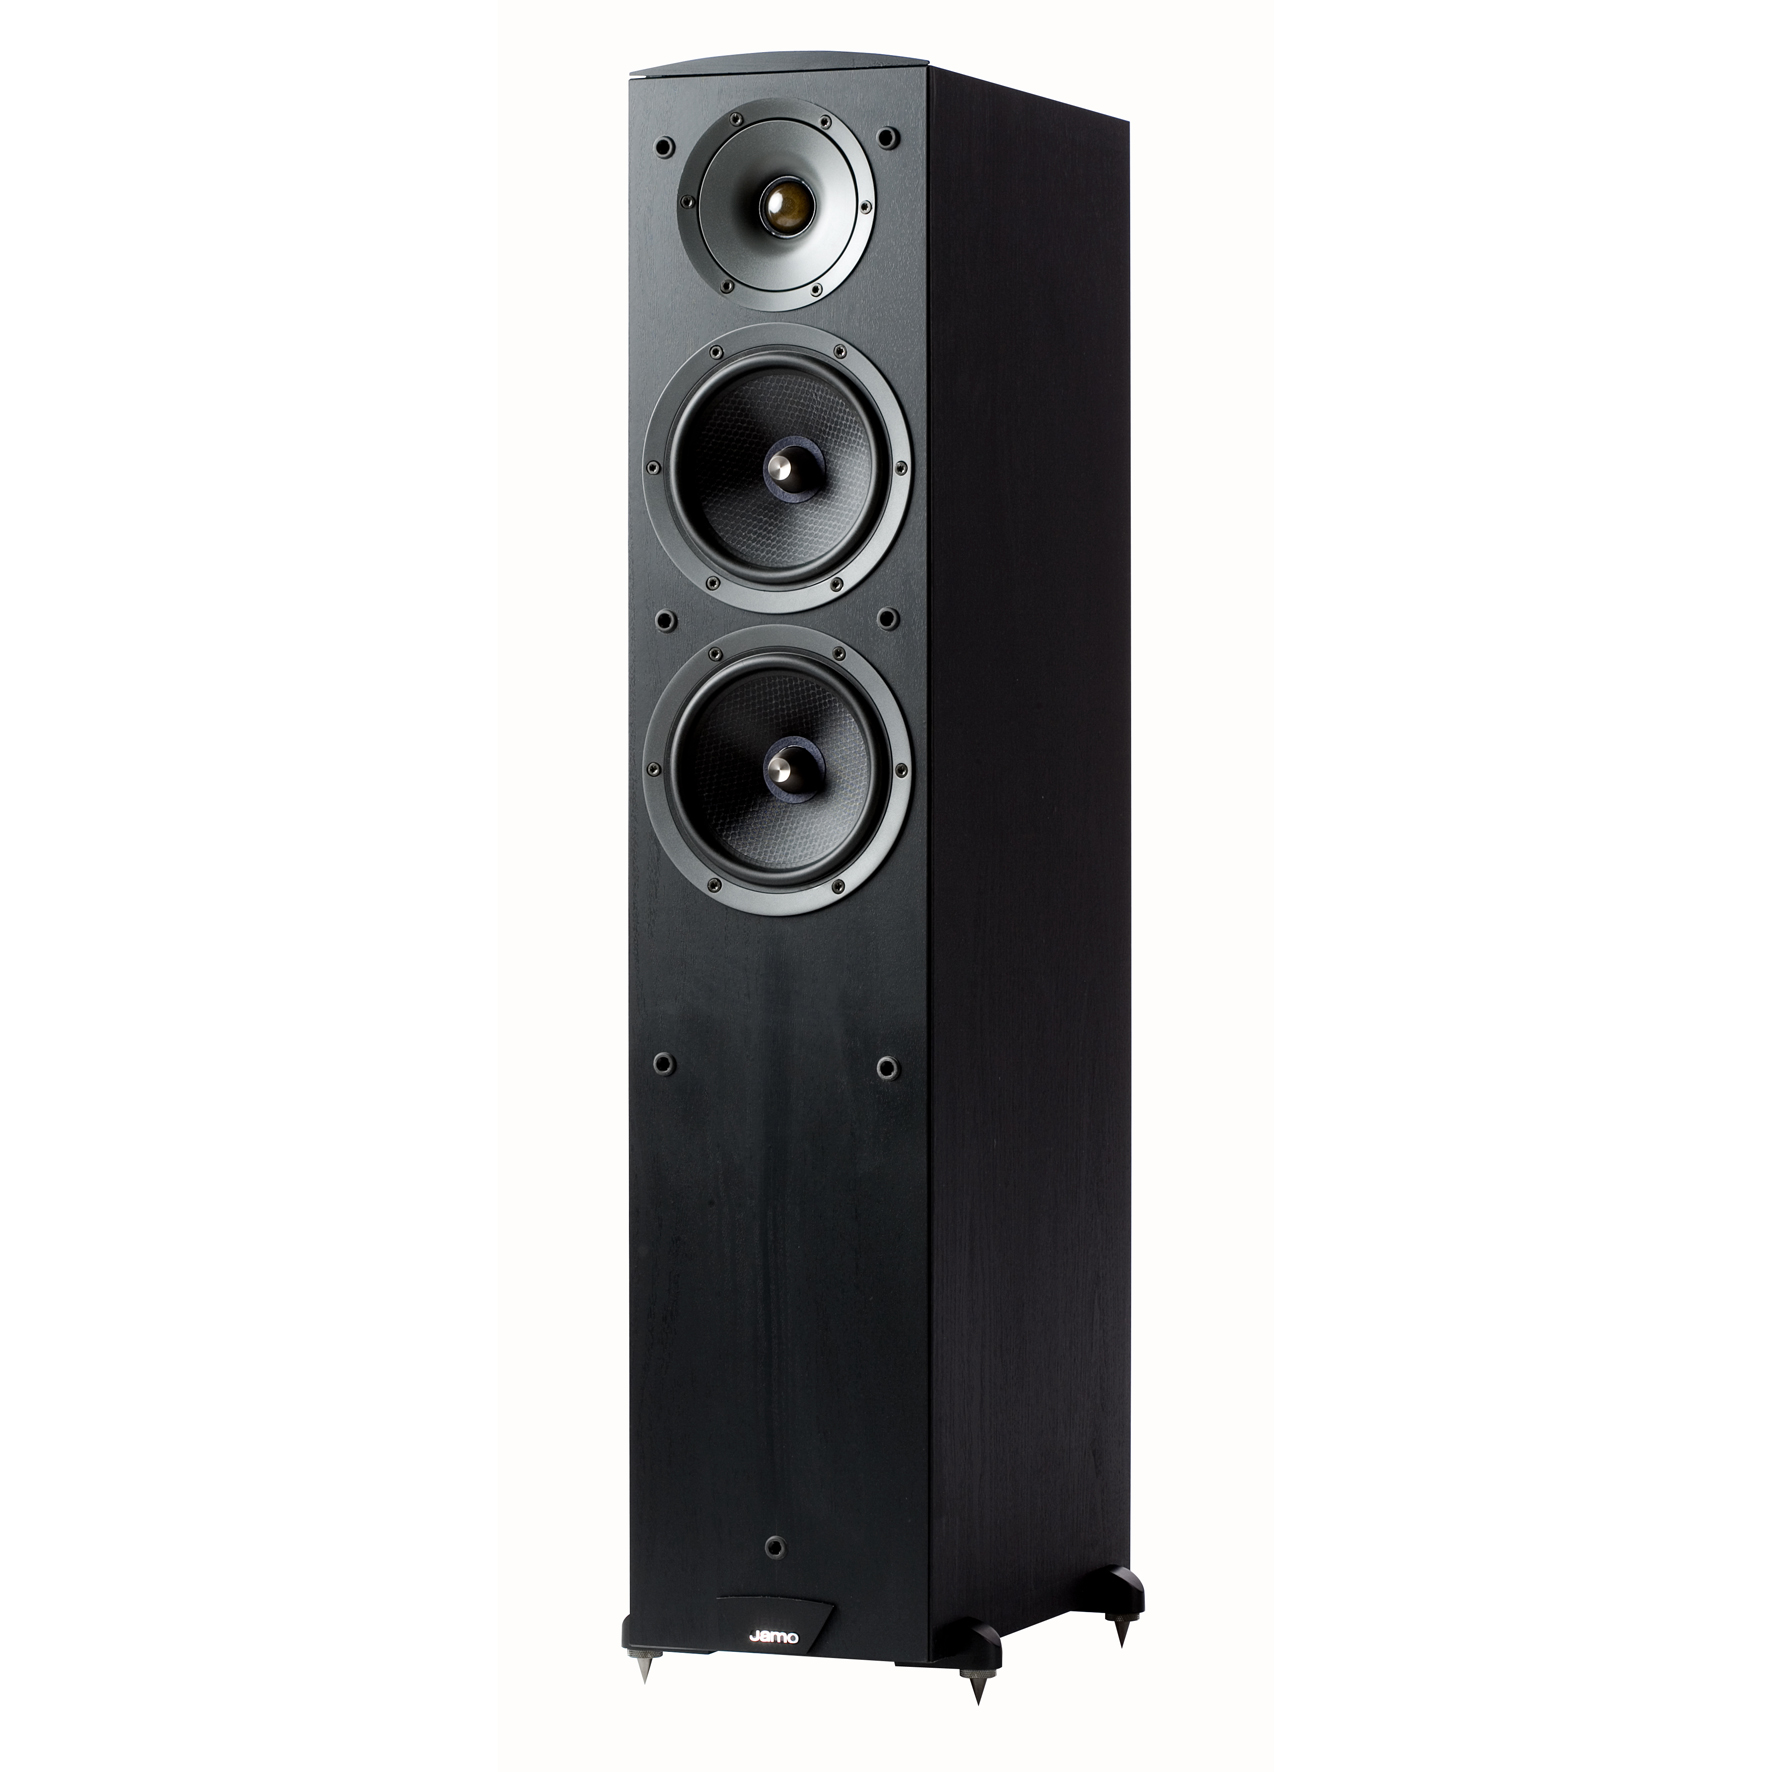 Best In Wall Home Theater Speakers home theater speakers: in-wall vs. floor standing – which is best